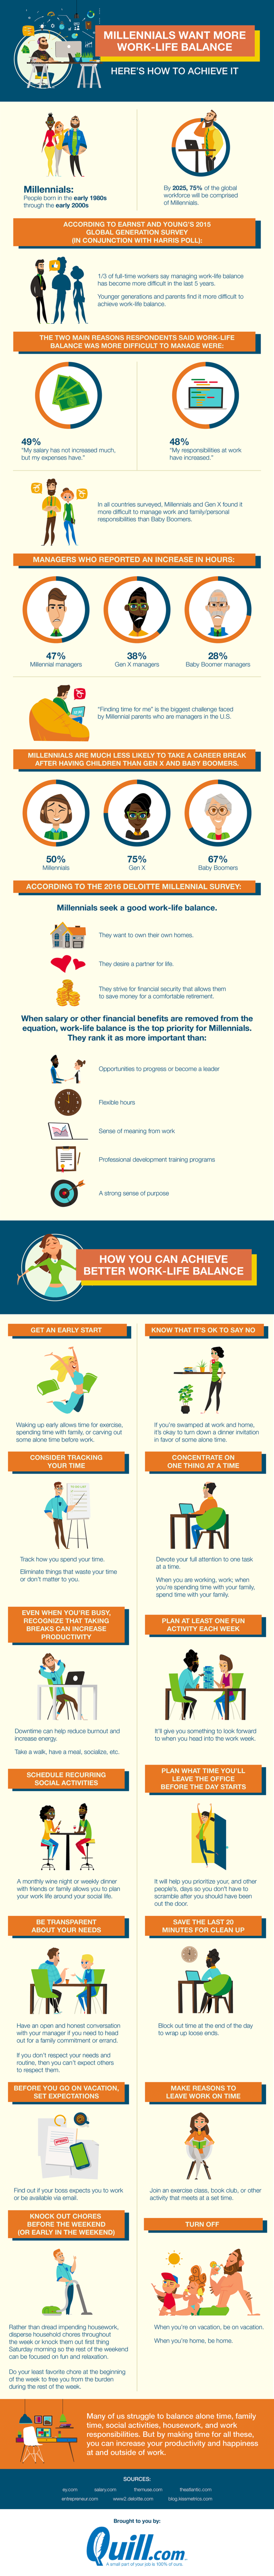 Millennials Want More Work-Life Balance: Here's How To Achieve It #Infographic